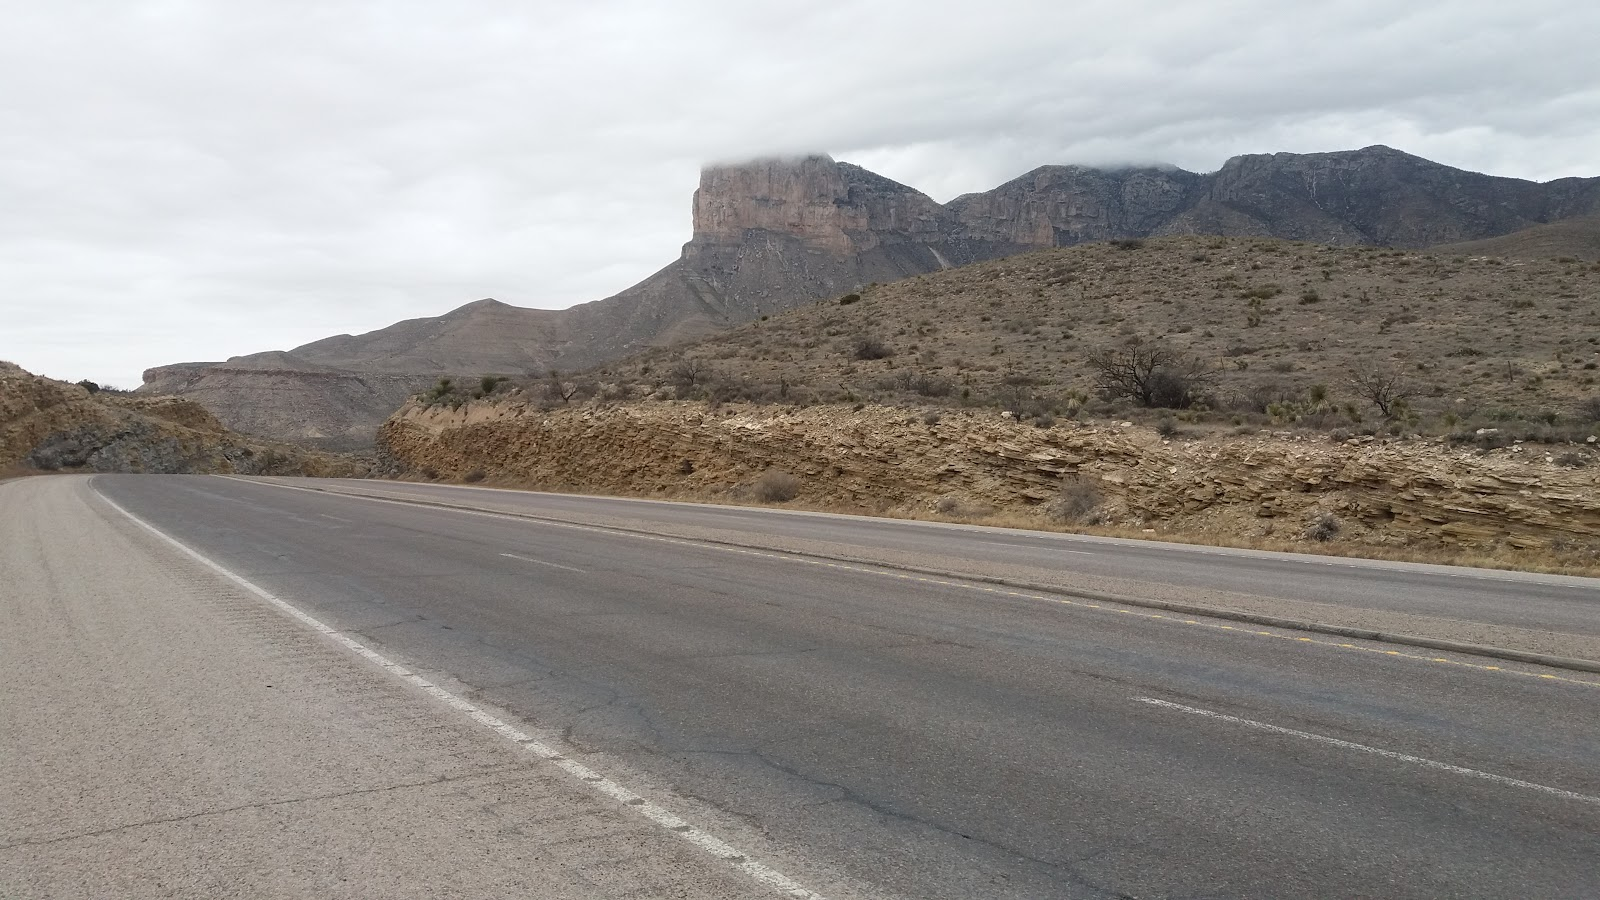 Bicycle ride Guadalupe Mountains National Park - road, mountain, rock formations